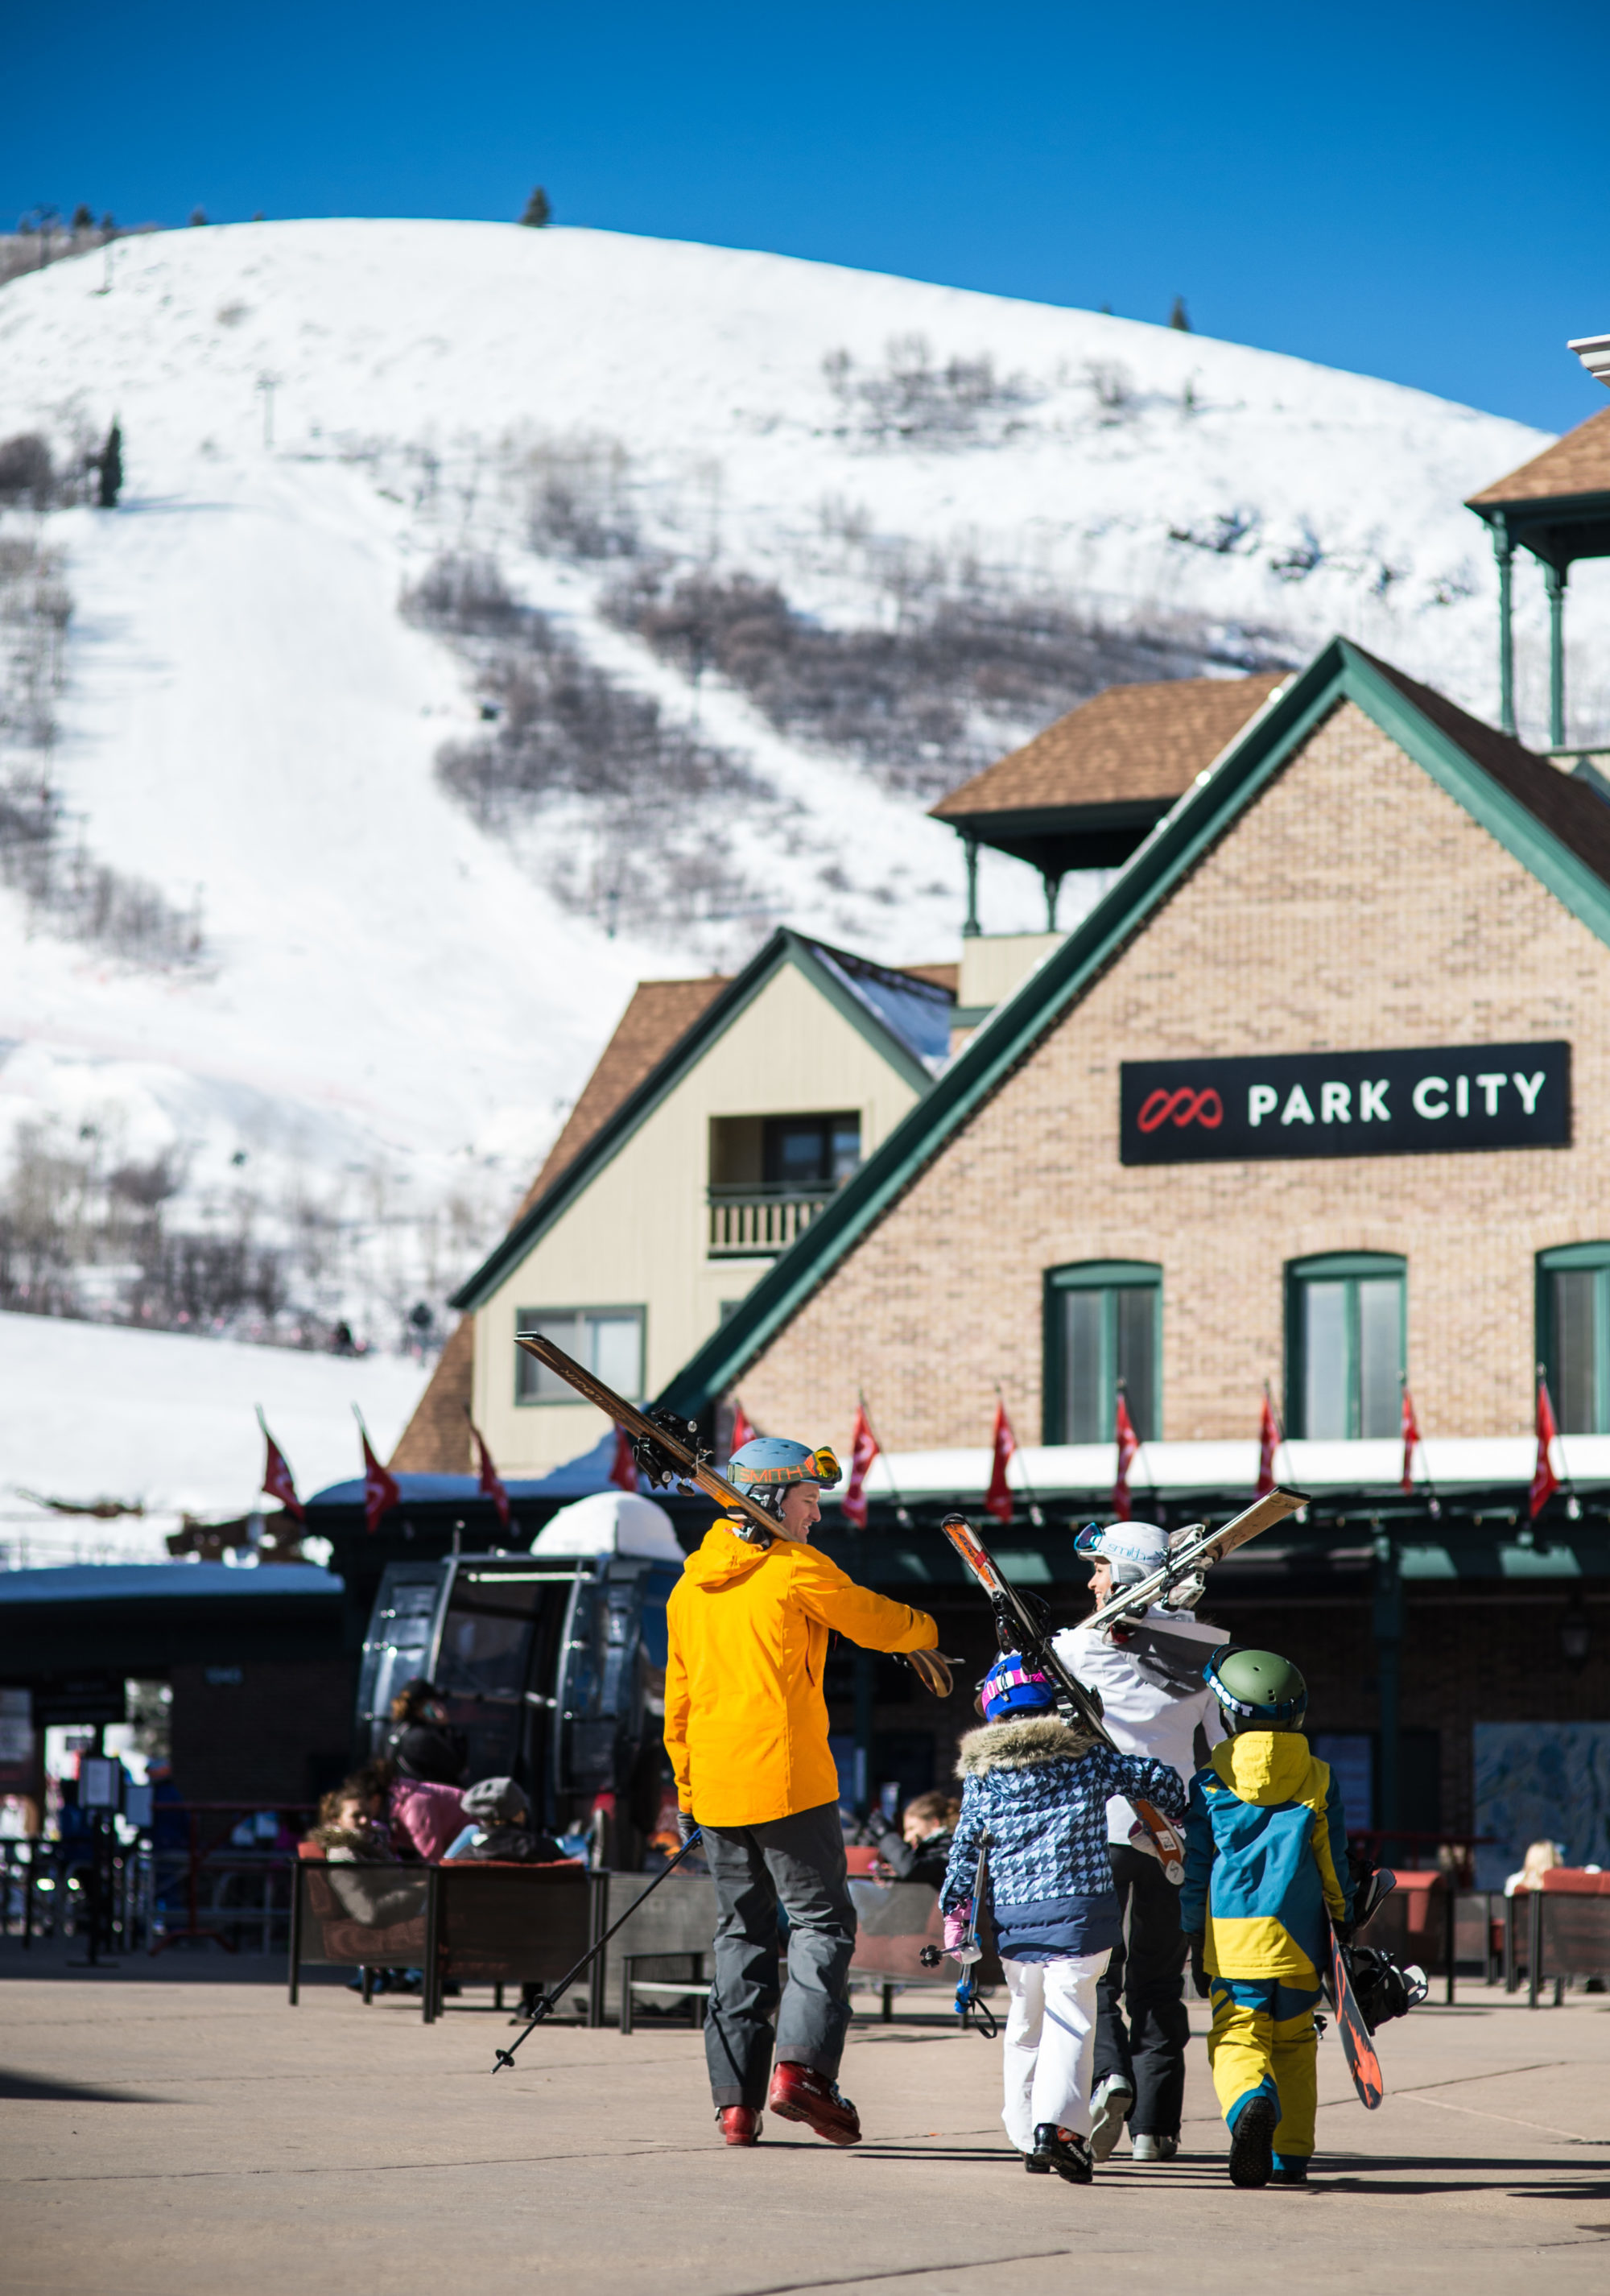 Family With Ski Gear at Park City Mountain Base Area